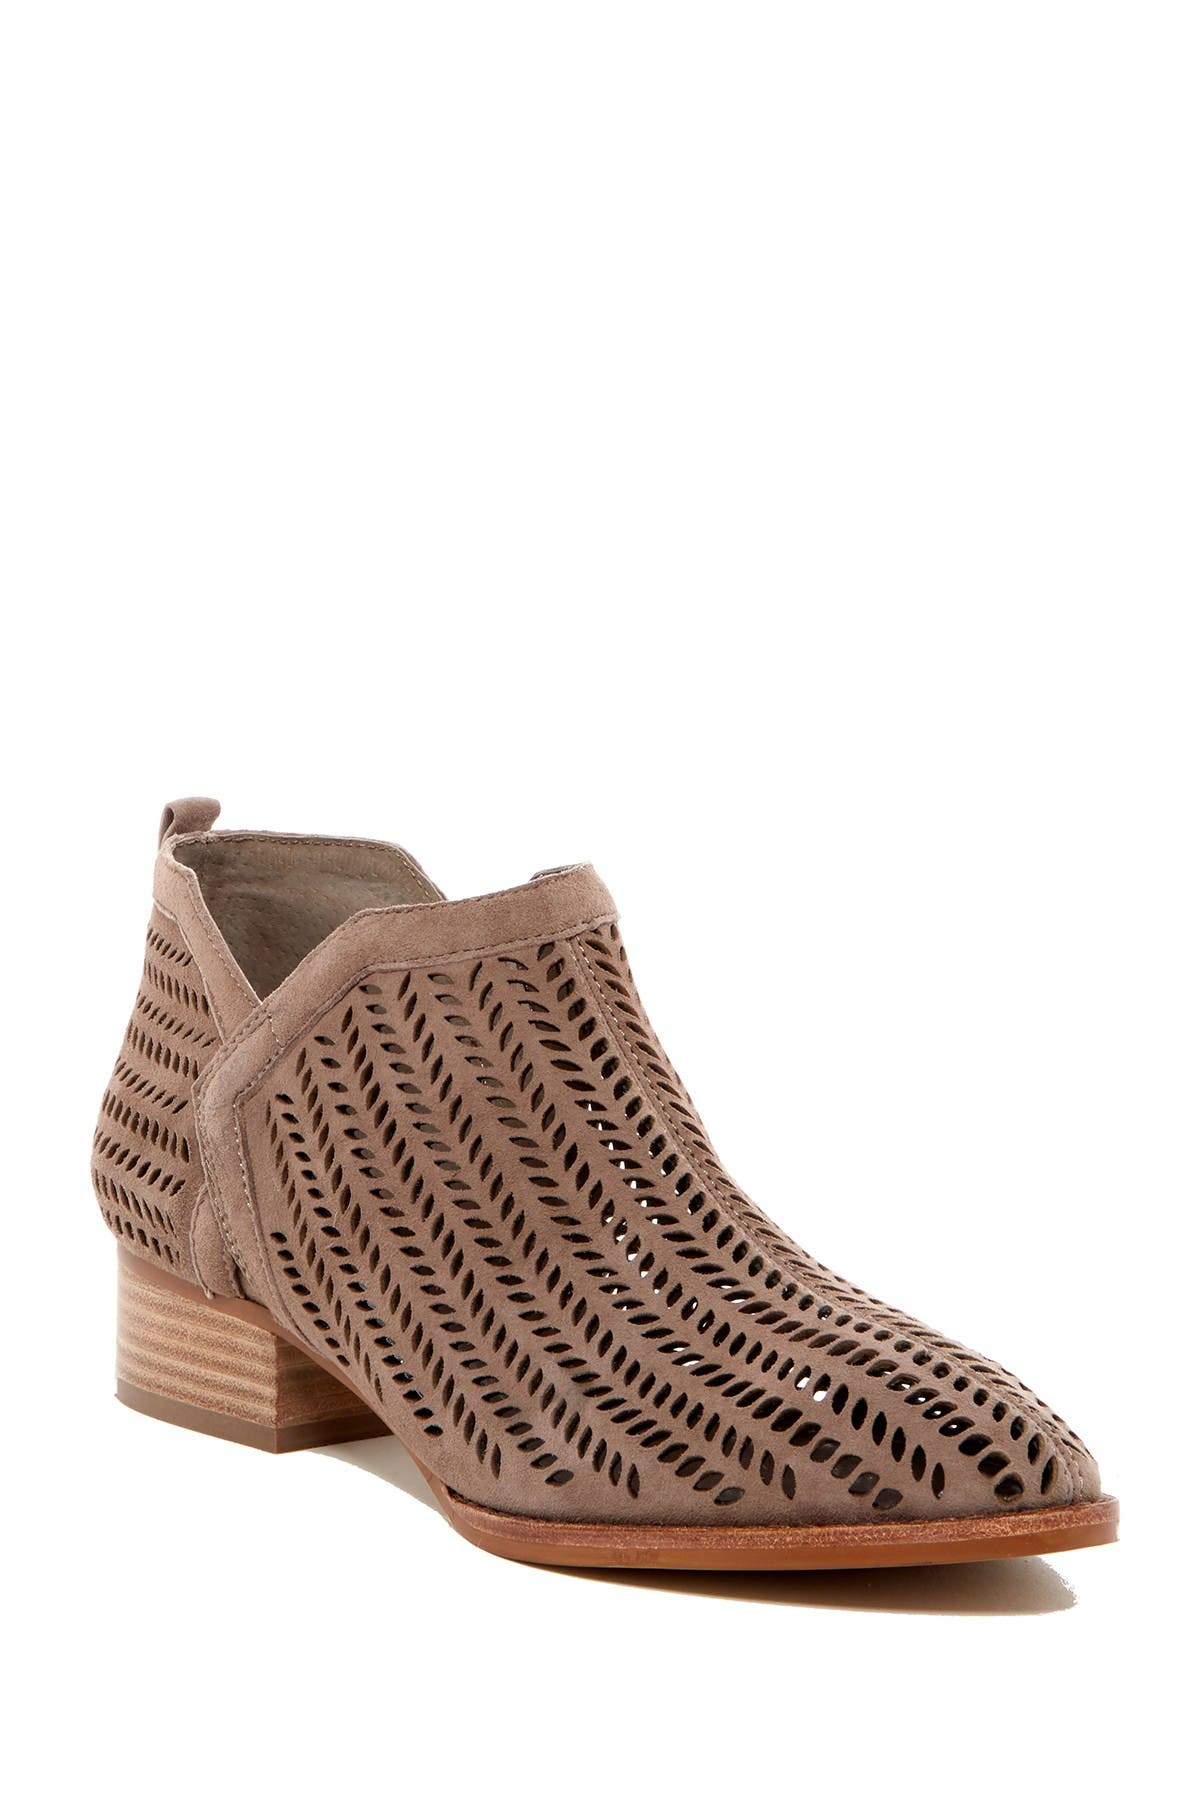 Image of Vince Camuto Cammy Bootie